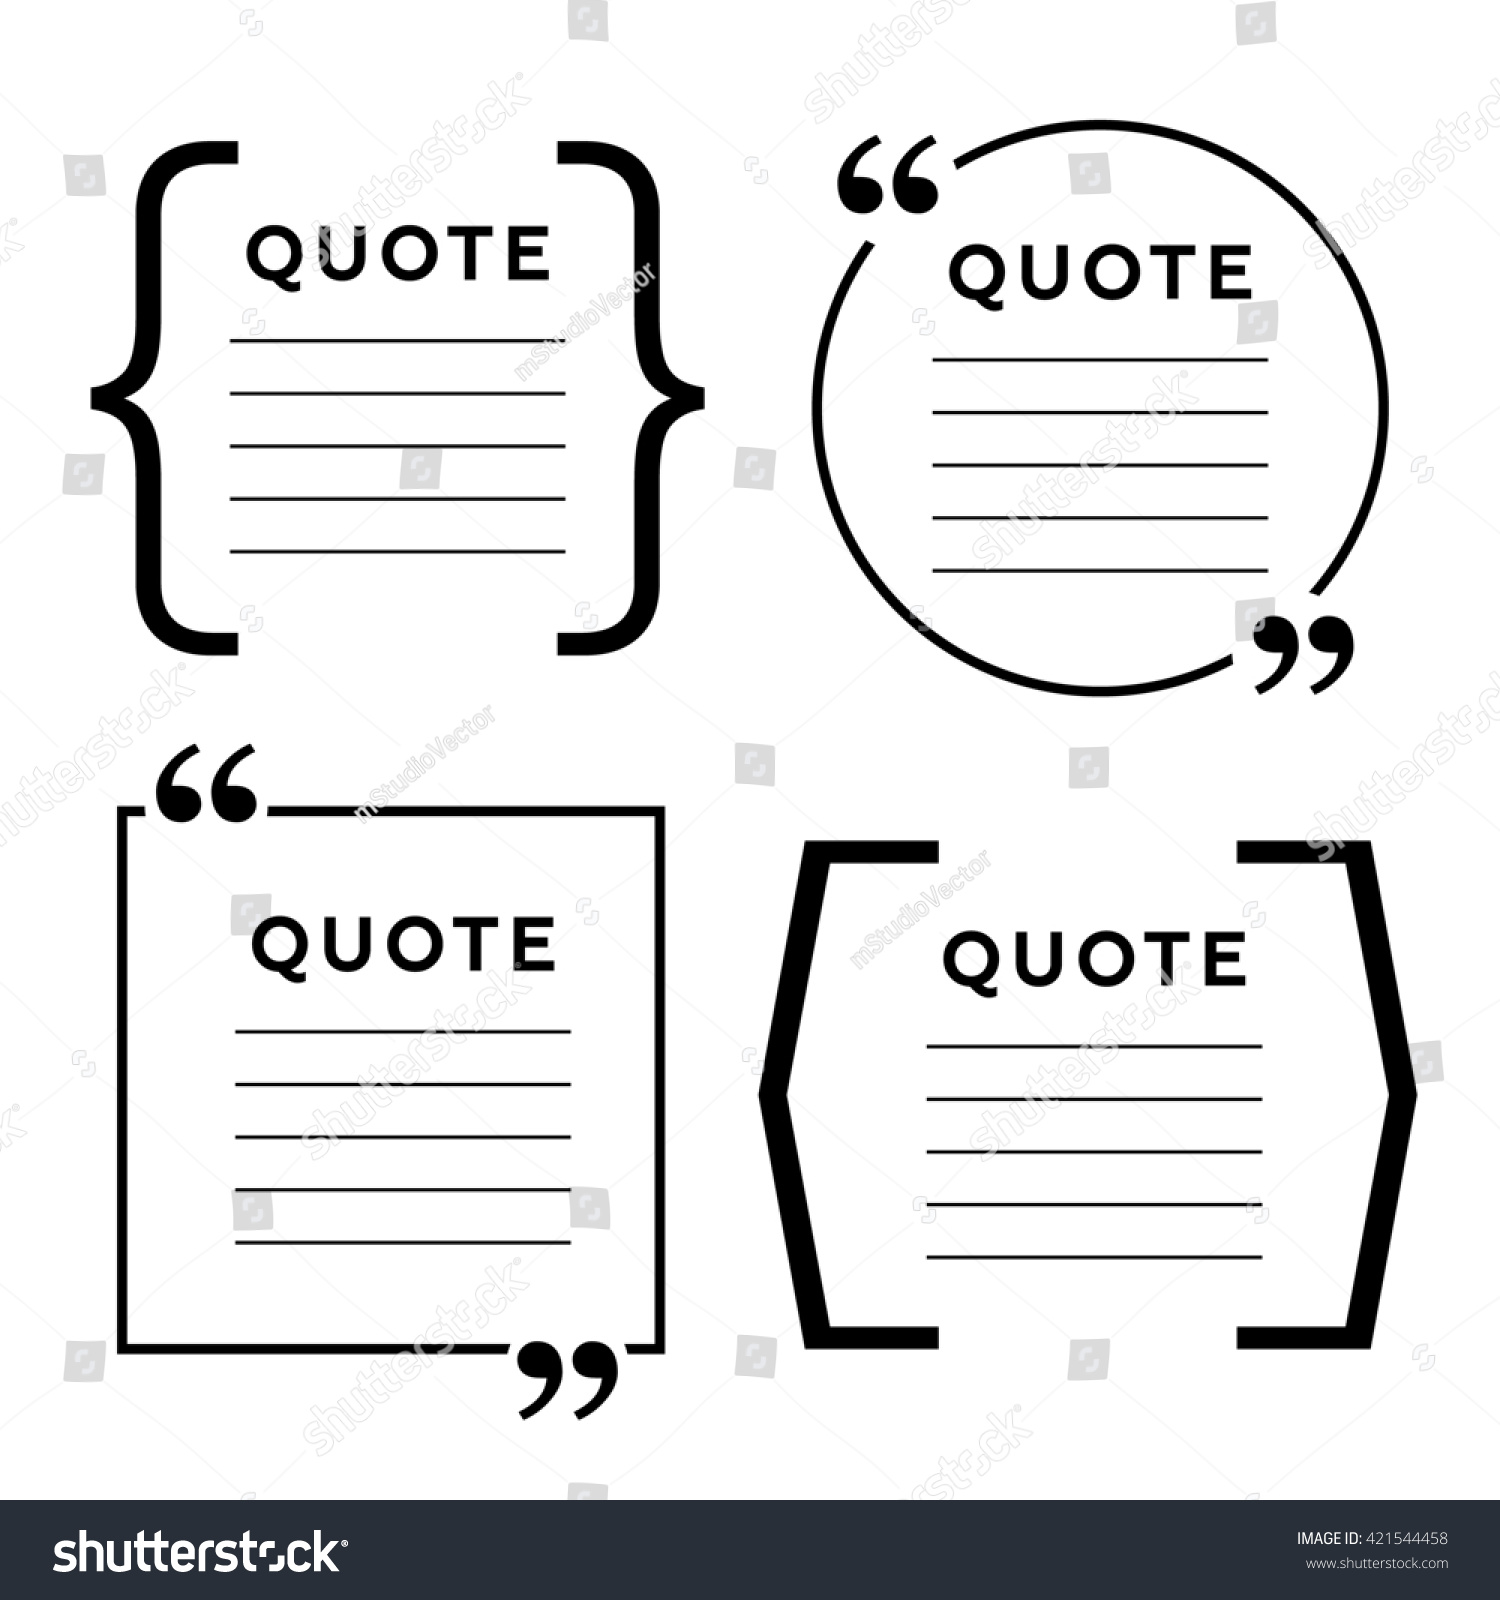 Quote blank template quote bubble empty stock illustration 421544458 quote blank template quote bubble empty template circle business card template paper accmission Choice Image